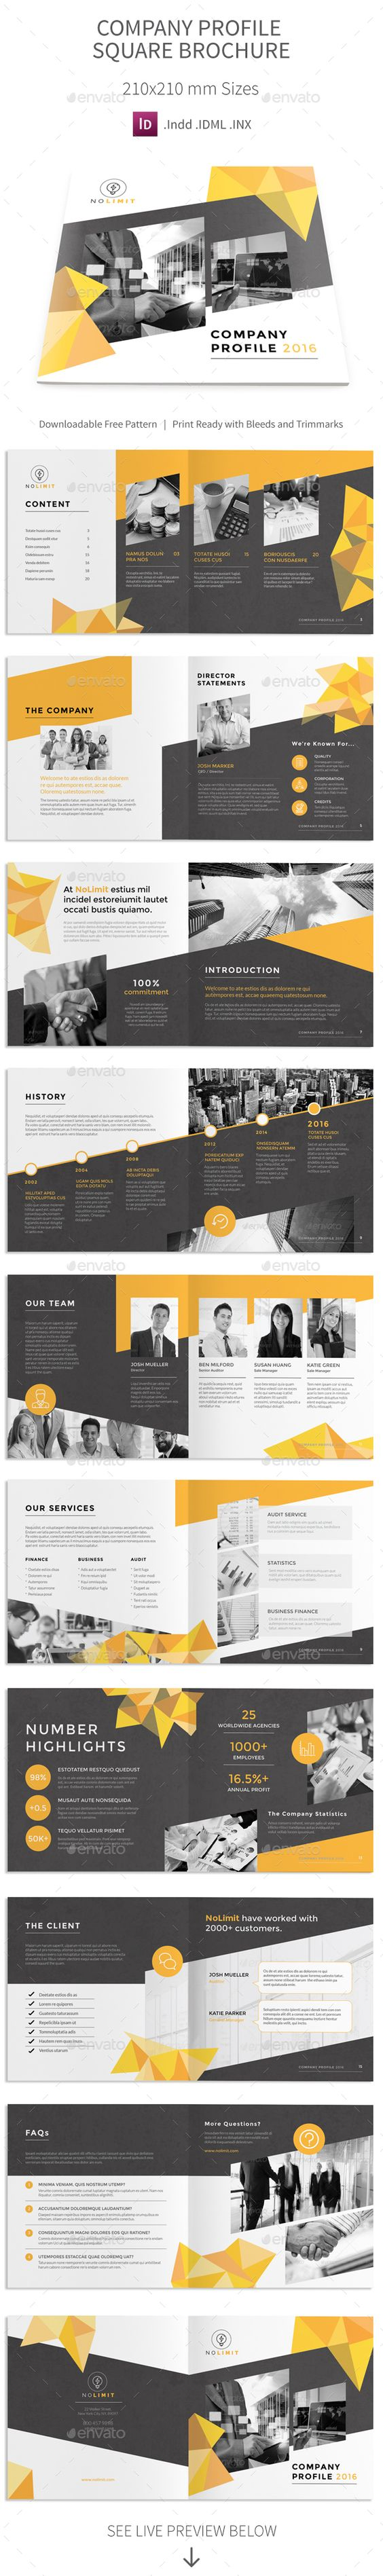 company profile template indesign - 28 images - 25 best ideas ...